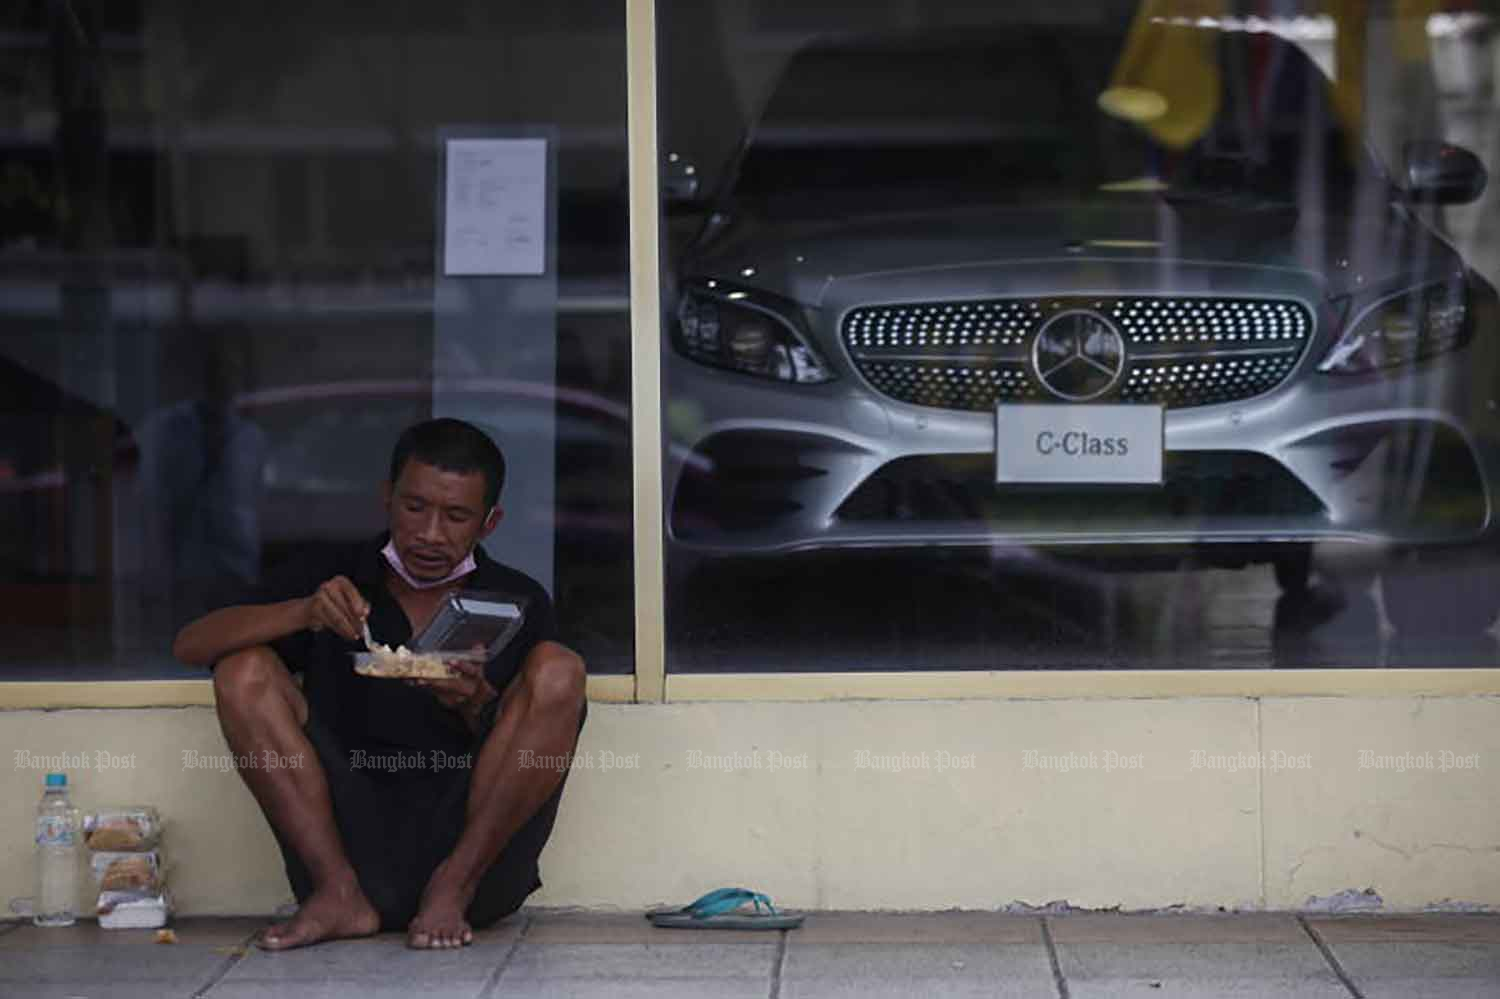 A man downs a meal outside a luxury car showroom near the Democracy Monument in Bangkok on Wednesday. The Covid-19 crisis has prompted many people to give food to homeless people on the streets. (Photo: Nutthawat Wicheanbut)